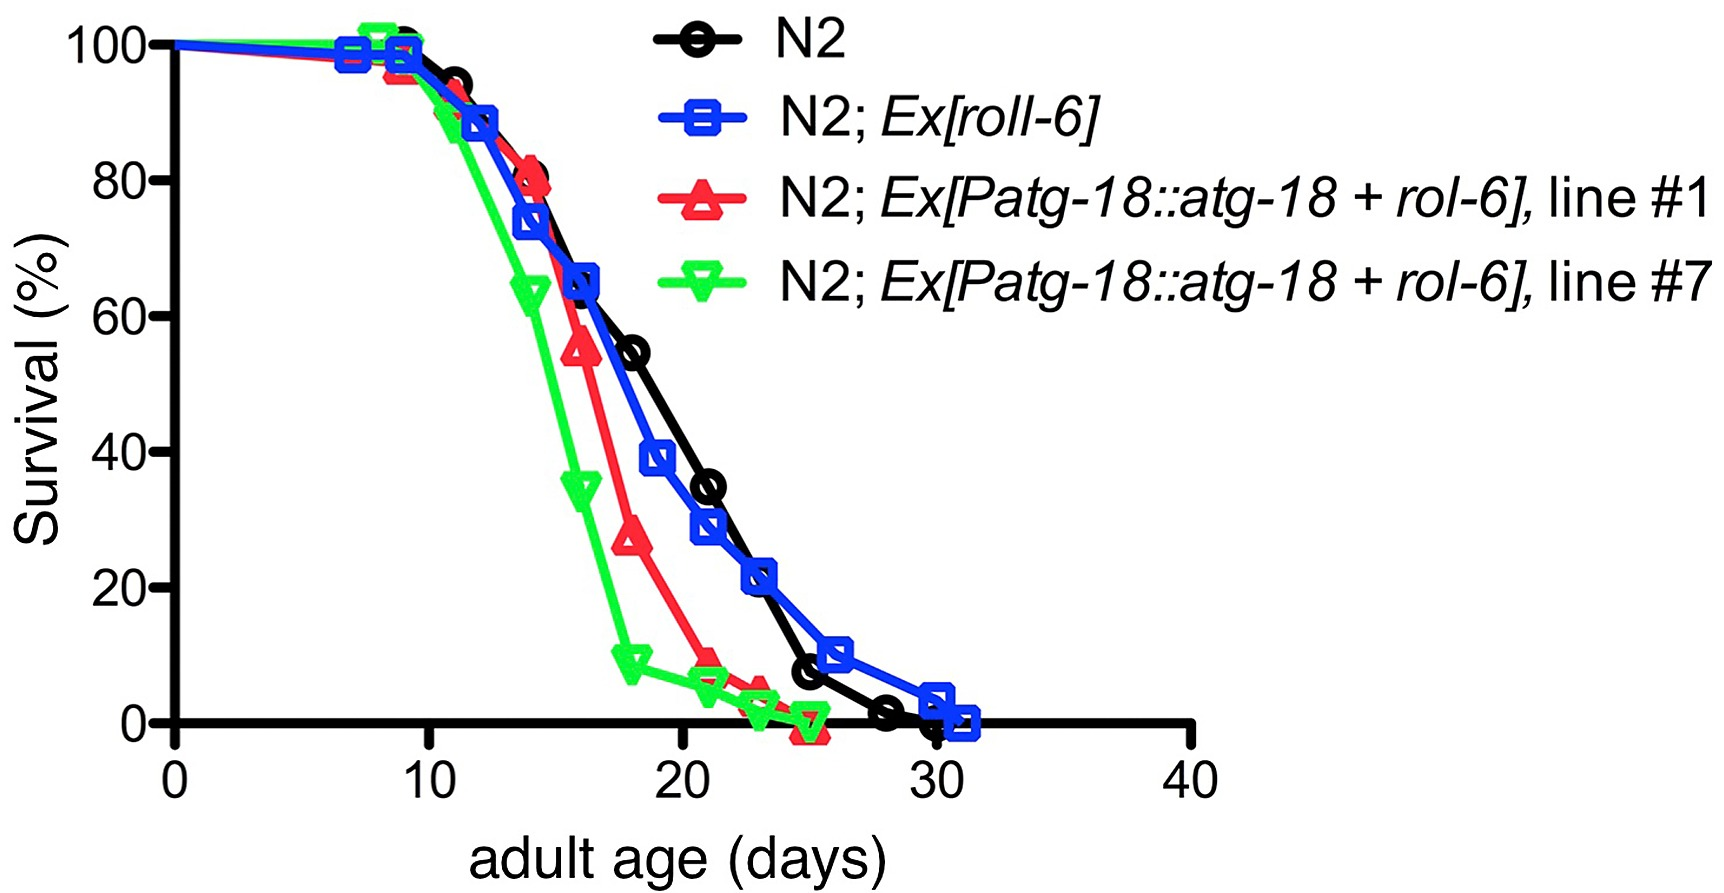 The Cell Non Autonomous Function Of Atg 18 Is Essential For 85 Caballero Fuse Box S1 Fig Overexpression Under Control Its Native Promoter Decreases Lifespan Wildtype N2 Animals